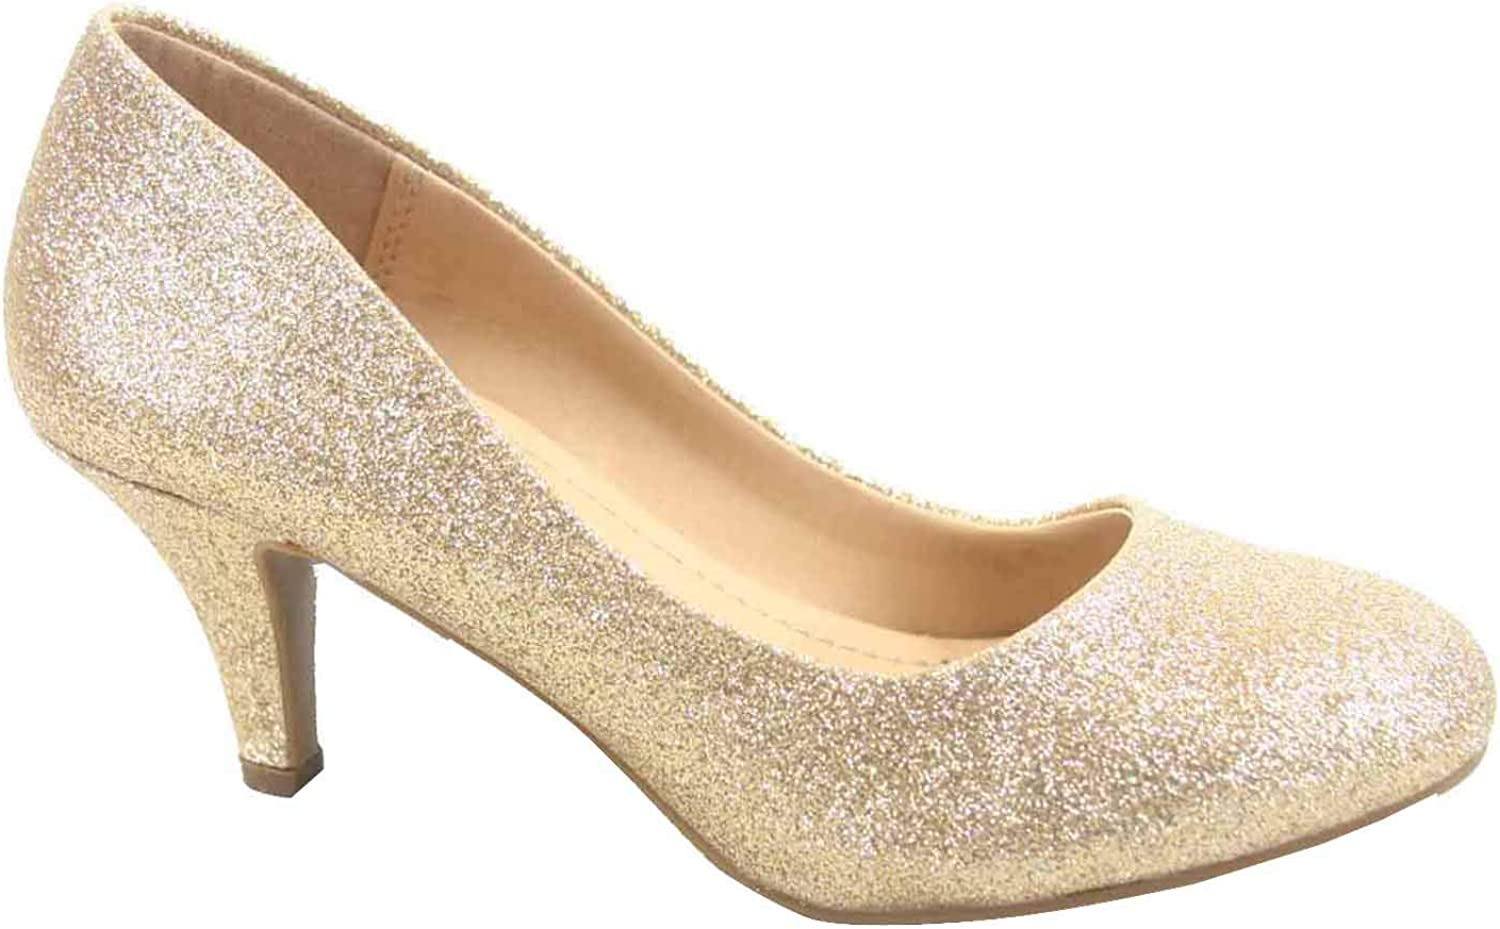 CITYCLASSIFIED Carlo-s Women's Classic Comfort Round Toe Low Heel Pump Office shoes (9 B(M) US, gold)